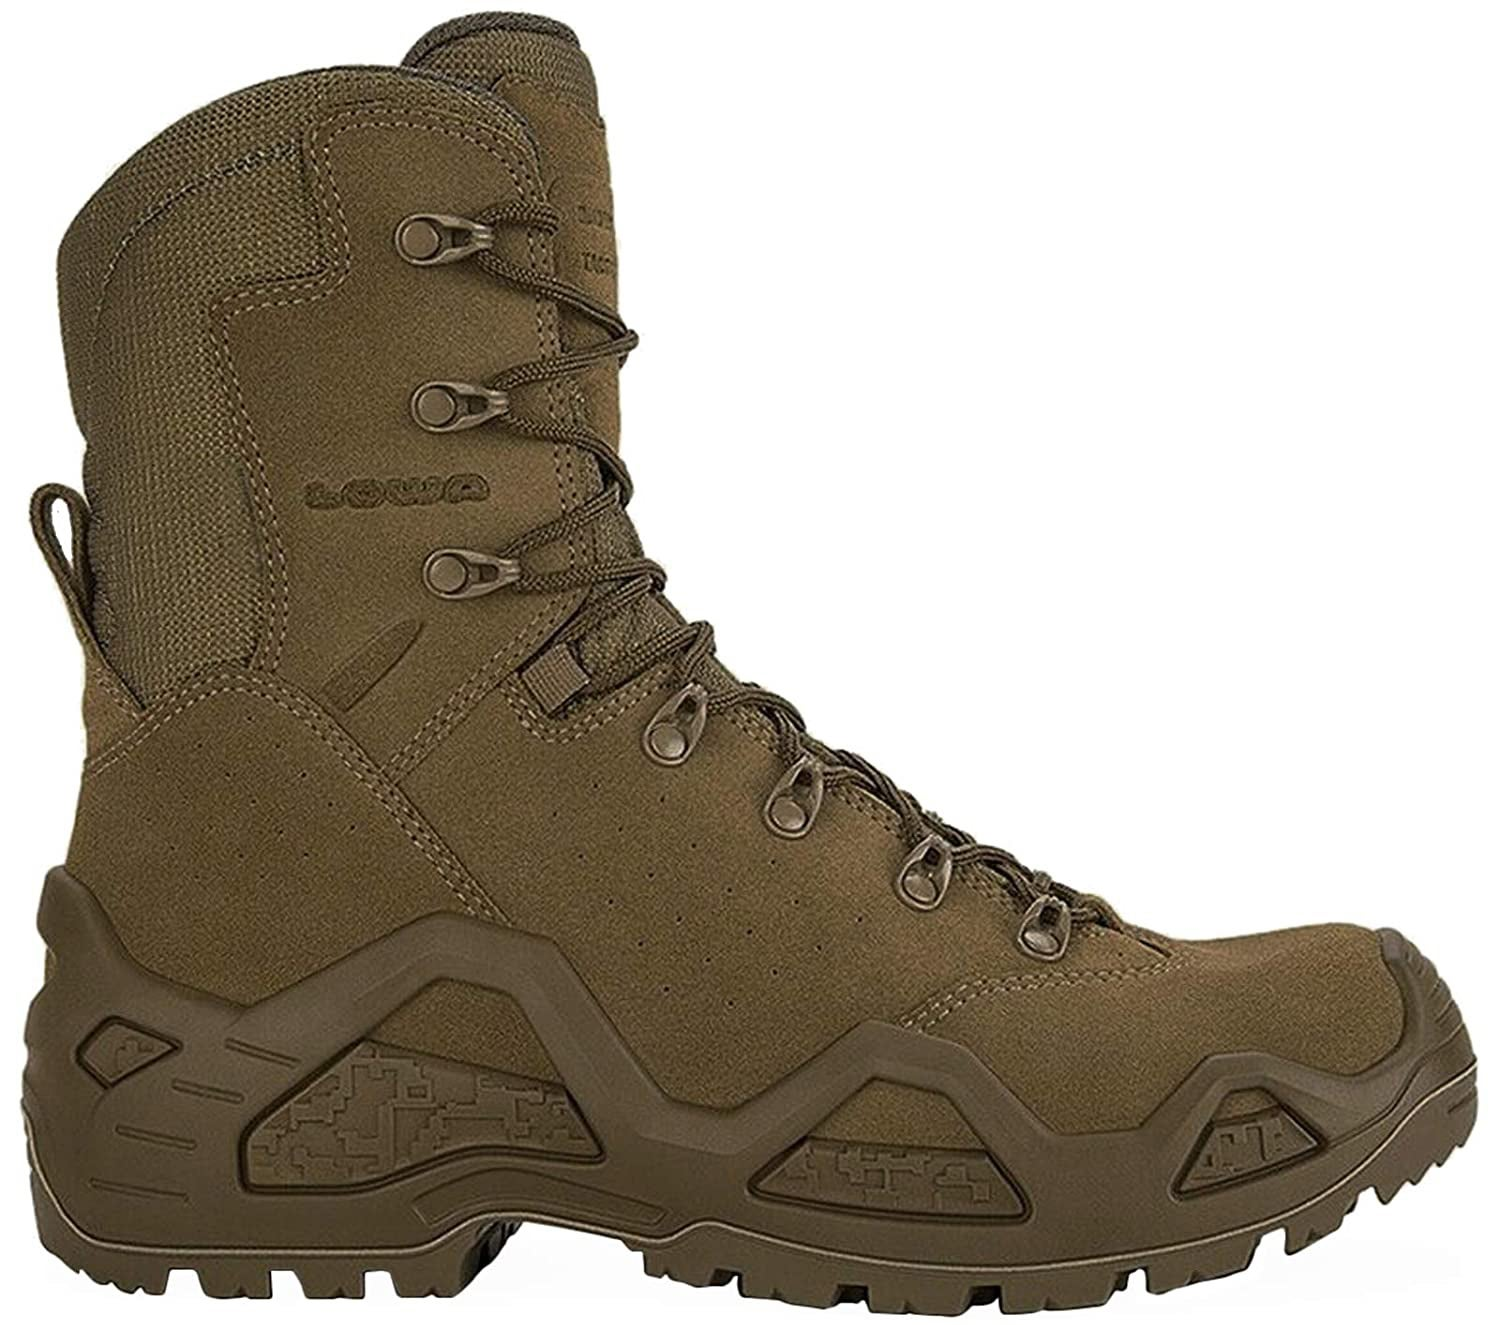 LOWA Z-8S Task Force Suede Boot